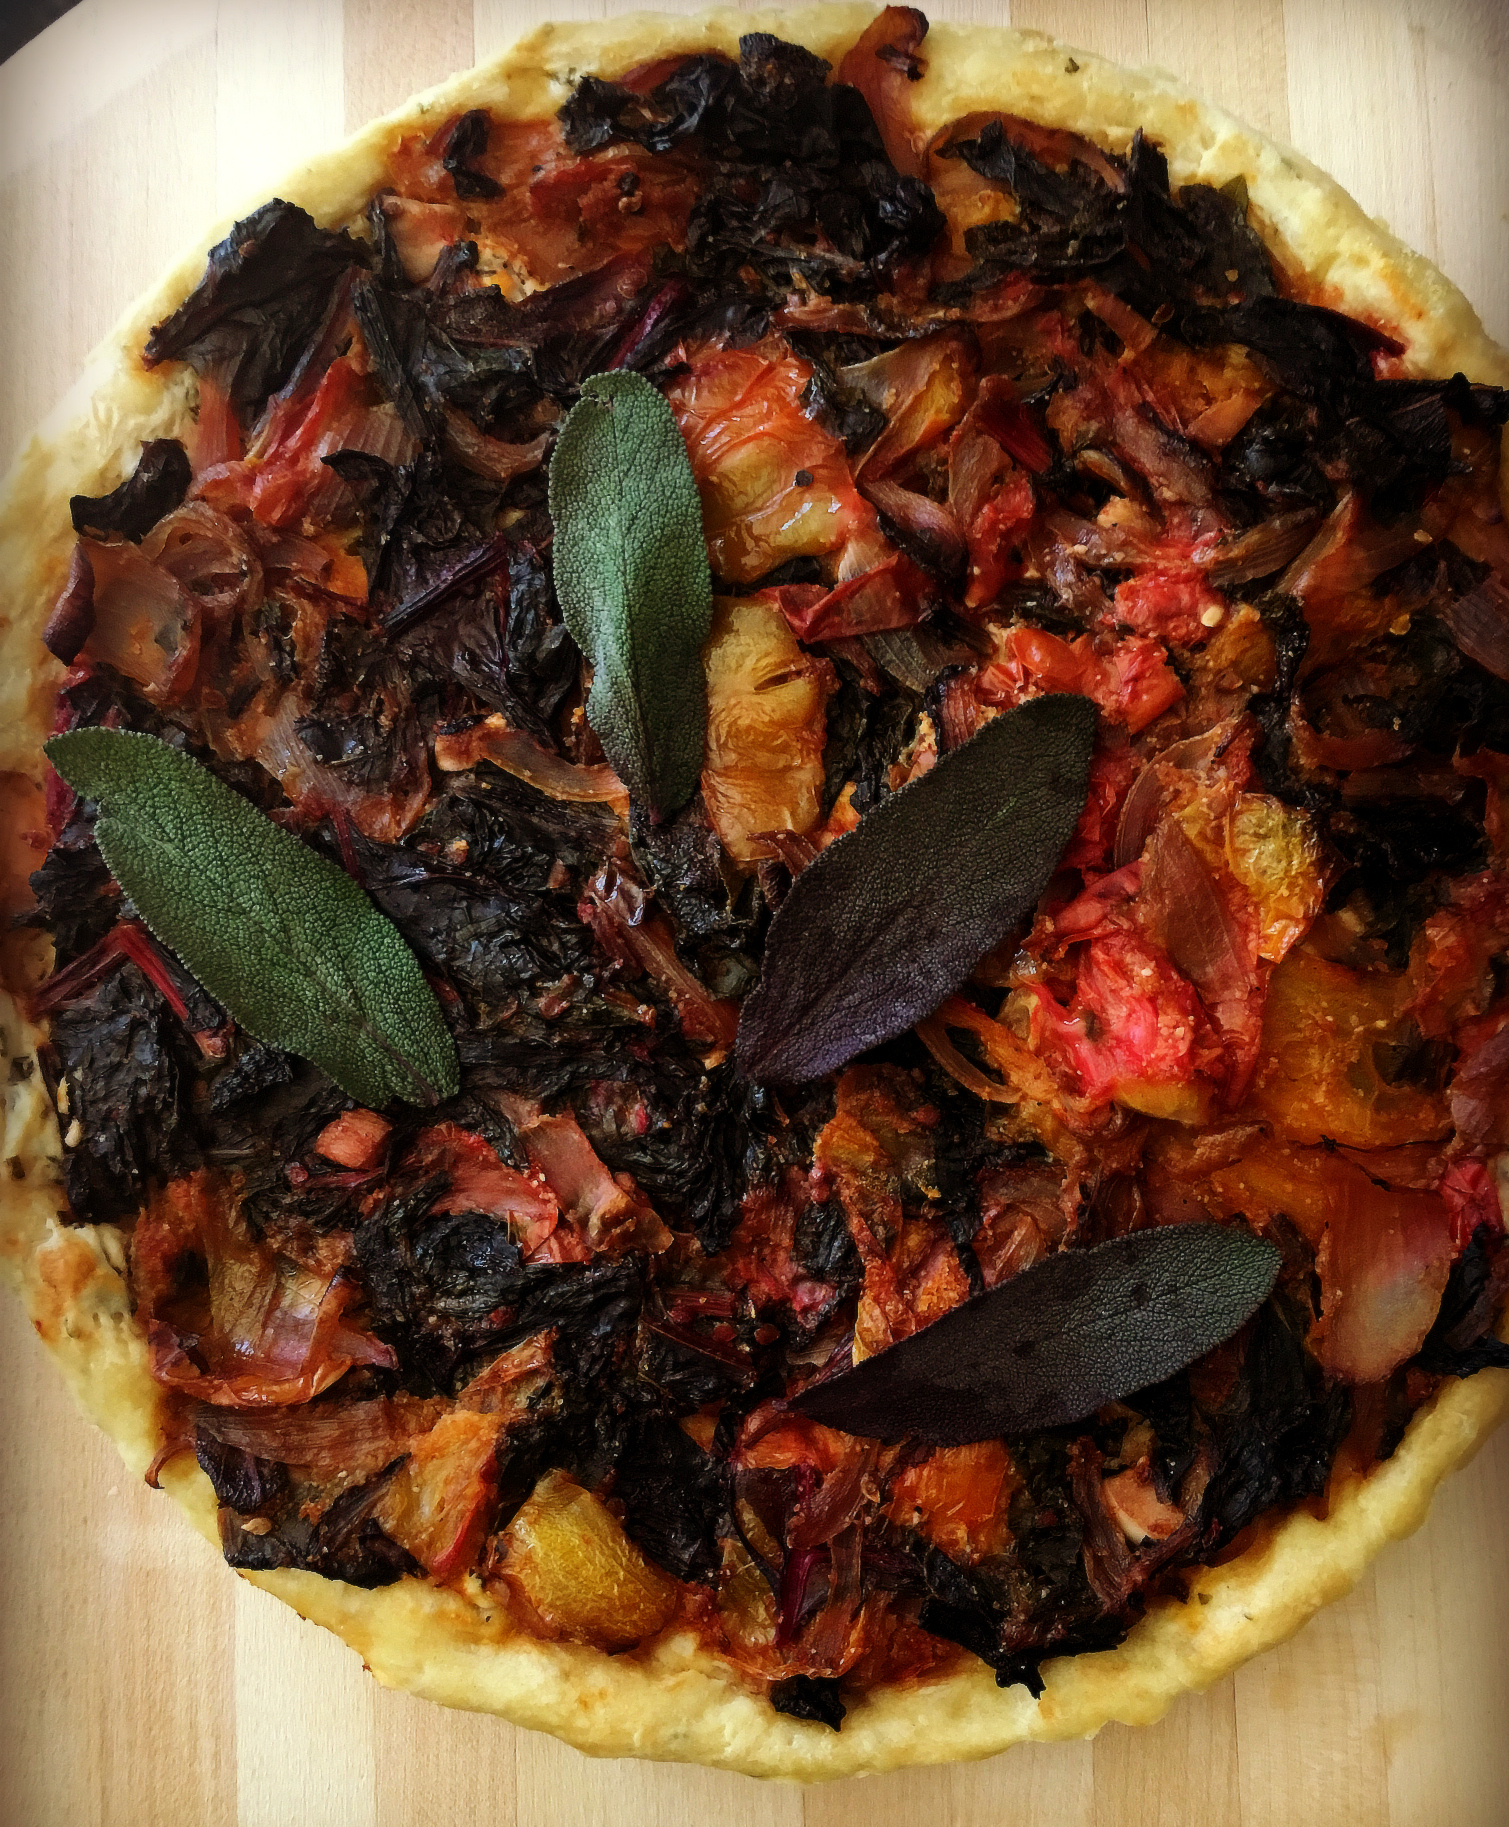 Tomato & Chard tart - Yield: One ten-inch tart, about 8 servingsIngredients:For the yeasted dough:2 ¼ teaspoons active dry yeast½ teaspoon sugar⅔ teaspoon salt½ cup water3 tablespoons olive oil1 egg, lightly beaten1 cup bread flour¾ cup whole wheat flour2 teaspoons dried Italian herb blend (oregano, thyme, marjoram, & sage)For the tart filling:2 tablespoons olive oil2 small onions or shallots, thinly sliced2 cloves garlic, minced finely1 ½ pounds heirloom or other fresh tomatoes, peeled, seeded, & chopped2 cups Swiss chard, rinsed, stems removed, & cut into thin strips2 tablespoons chopped fresh sage, plus a handful more for serving¼ cup cornmeal or polentaSalt and freshly ground black pepper½ cup herbed cream cheese or goat cheeseInstructions:To make the yeasted dough, dissolve the yeast and sugar in the water and let stand until it's bubbly, about ten minutes. Whisk the oil, egg, and salt together with the proofed yeast, then stir in the flours. When the dough is too stiff to work with a spoon, turn it onto a lightly floured counter and knead until smooth and elastic, about four minutes. Set though dough in an oiled bowl and turn it over to coat, cover with a towel, and let rise until double in bulk, about forty-five minutes. Set aside until ready to use.To make the filling, warm the oil over medium heat in a wide skillet. Cook the onions until translucent, about ten minutes. Add the garlic, tomatoes, chard, and fresh sage. Toss to combine and cook until all vegetables are tender, about ten minutes more. Add the salt and pepper. Remove from heat. Let the vegetables cool for a few minutes, then pour into a colander to drain off any excess liquid. Stir in the cornmeal. Allow to cool completely.To assemble and bake, preheat oven to 400 degrees F. Roll the dough into a thin circle, and line a ten-inch *tart shell with it. Add the cream cheese or goat cheese and spread evenly. Add the cooled vegetables. Spread evenly. Bake for thirty five minutes, or until the dough is